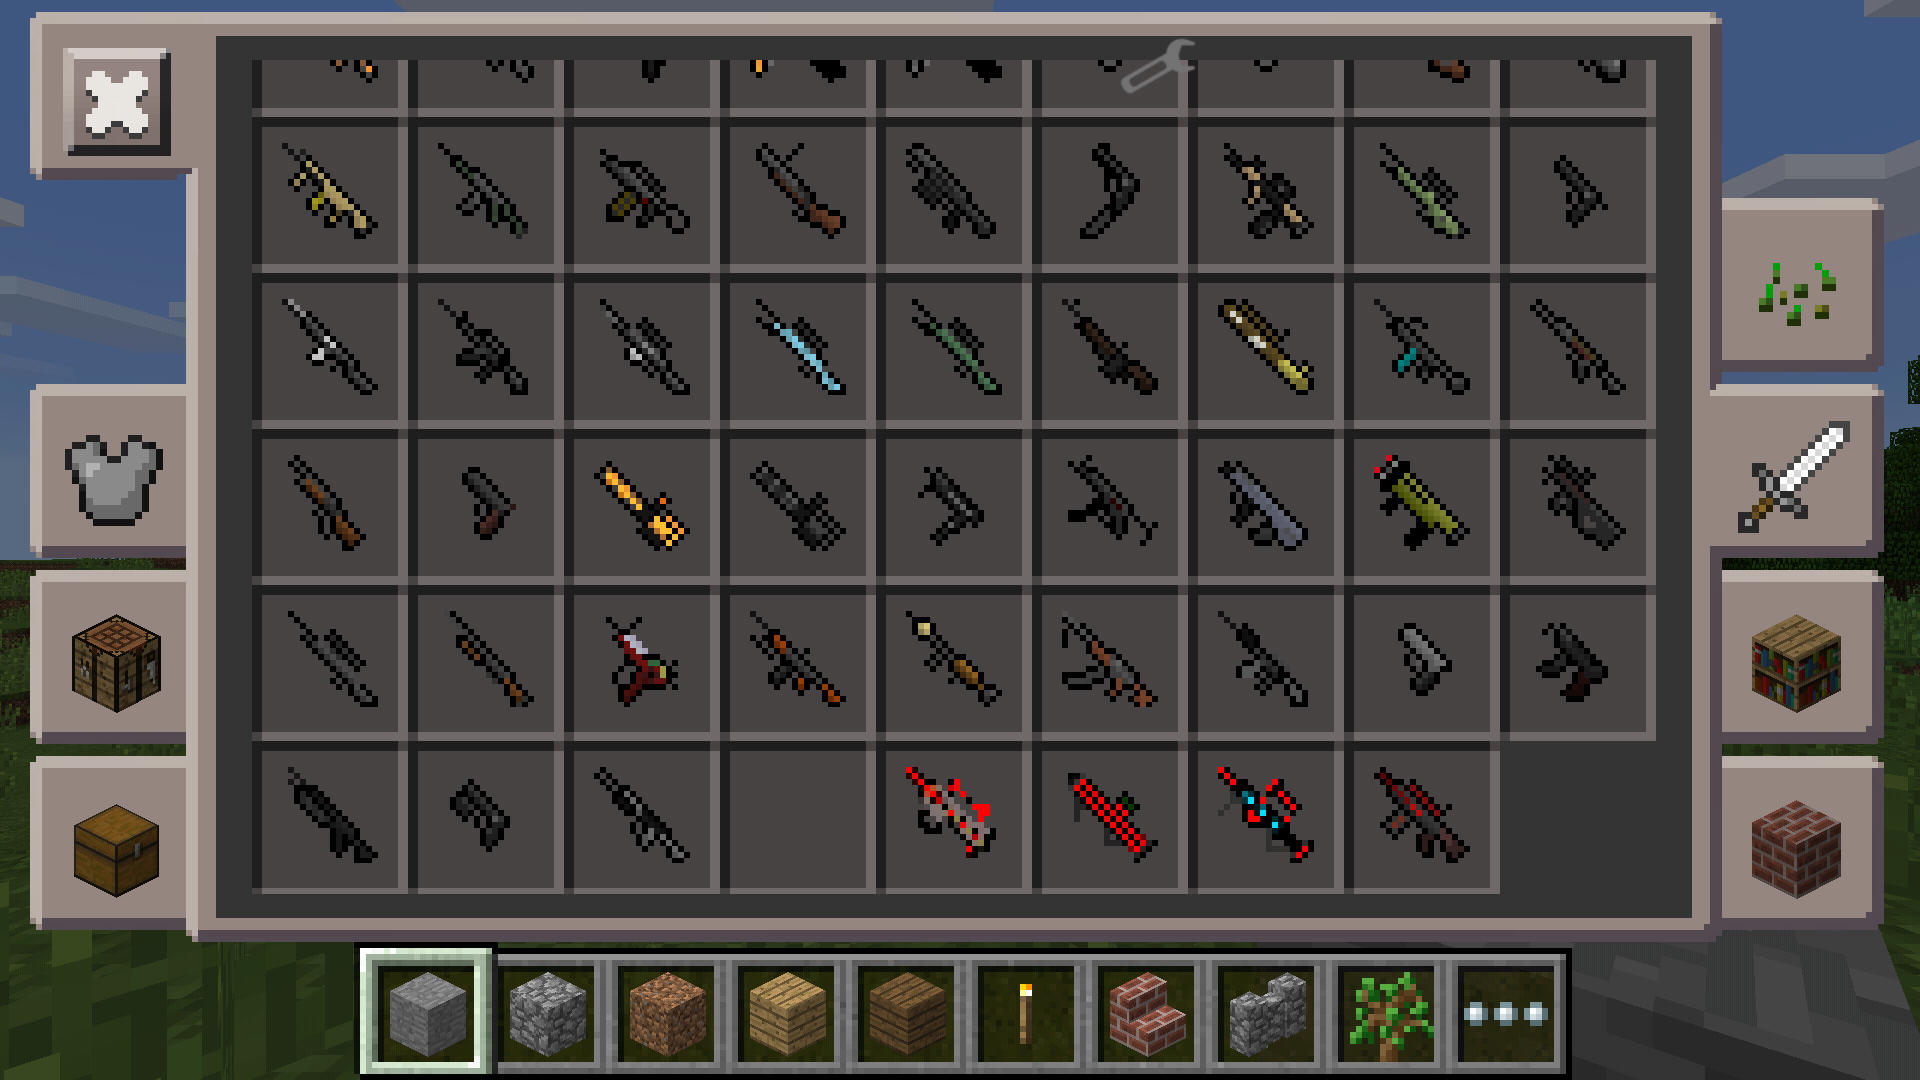 19:31 Minecraft CALL OF DUTY MOD! | REALISTIC 3D WEAPONS, GUNS, SNIPERS, &